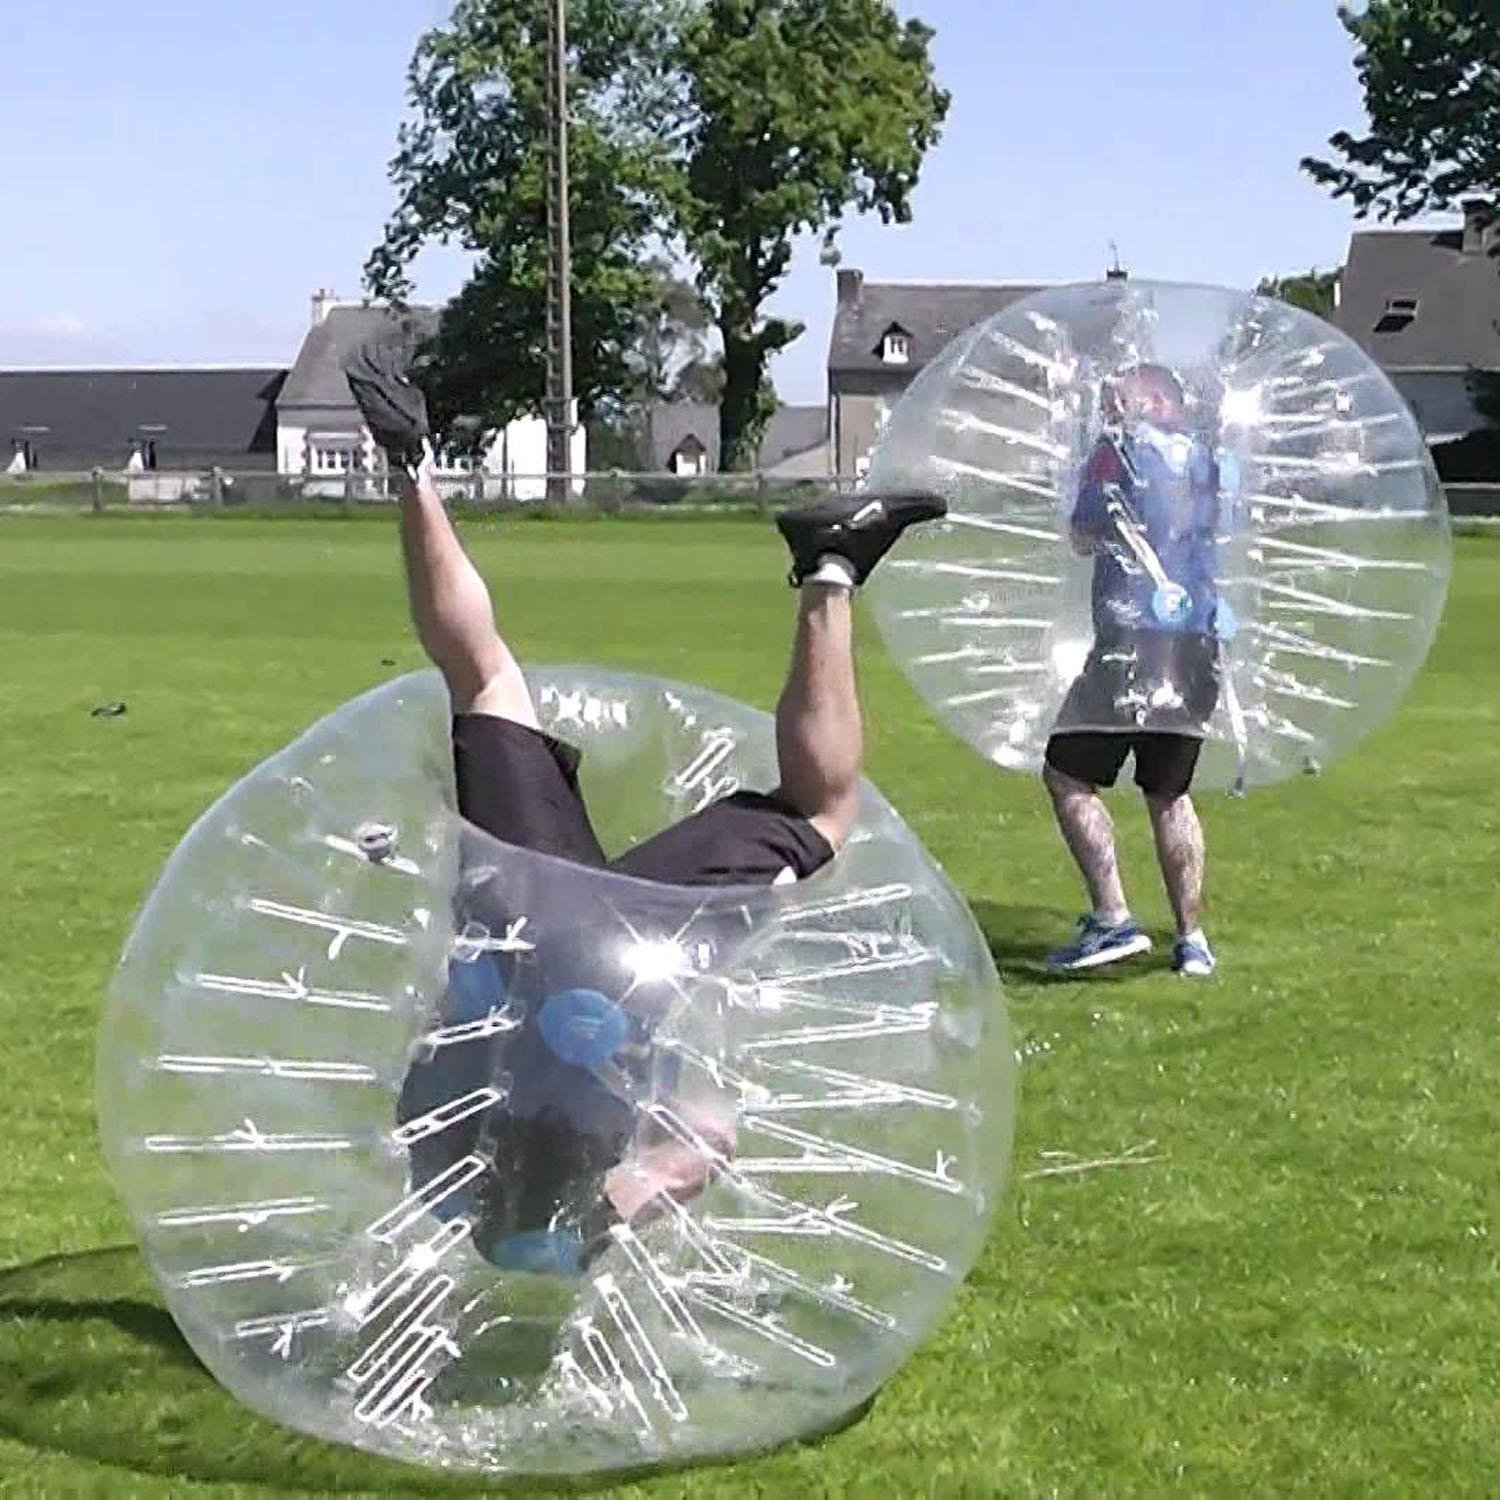 Keland 5FT (1.5m) Zorb Ball PVC Bubble Transparent Inflatable Bumper Balls Knocker Soccer Game Balls by Keland